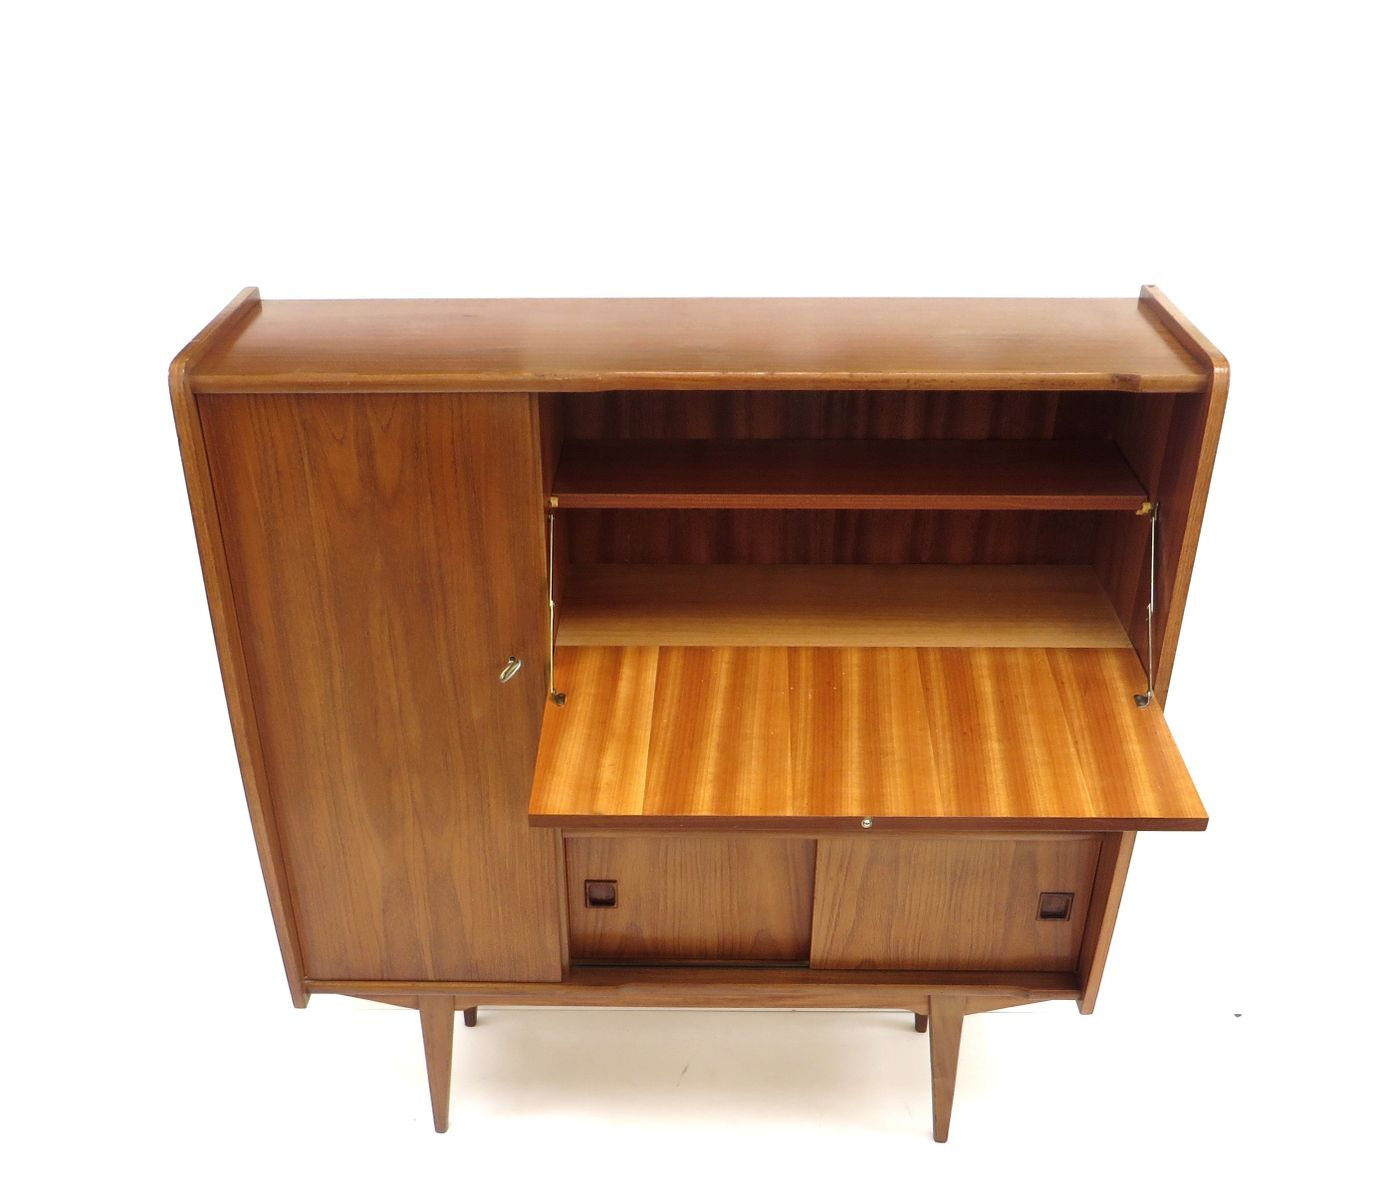 Vintage high sideboard in teak 1960s for sale at pamono for Sideboard 2 m breit